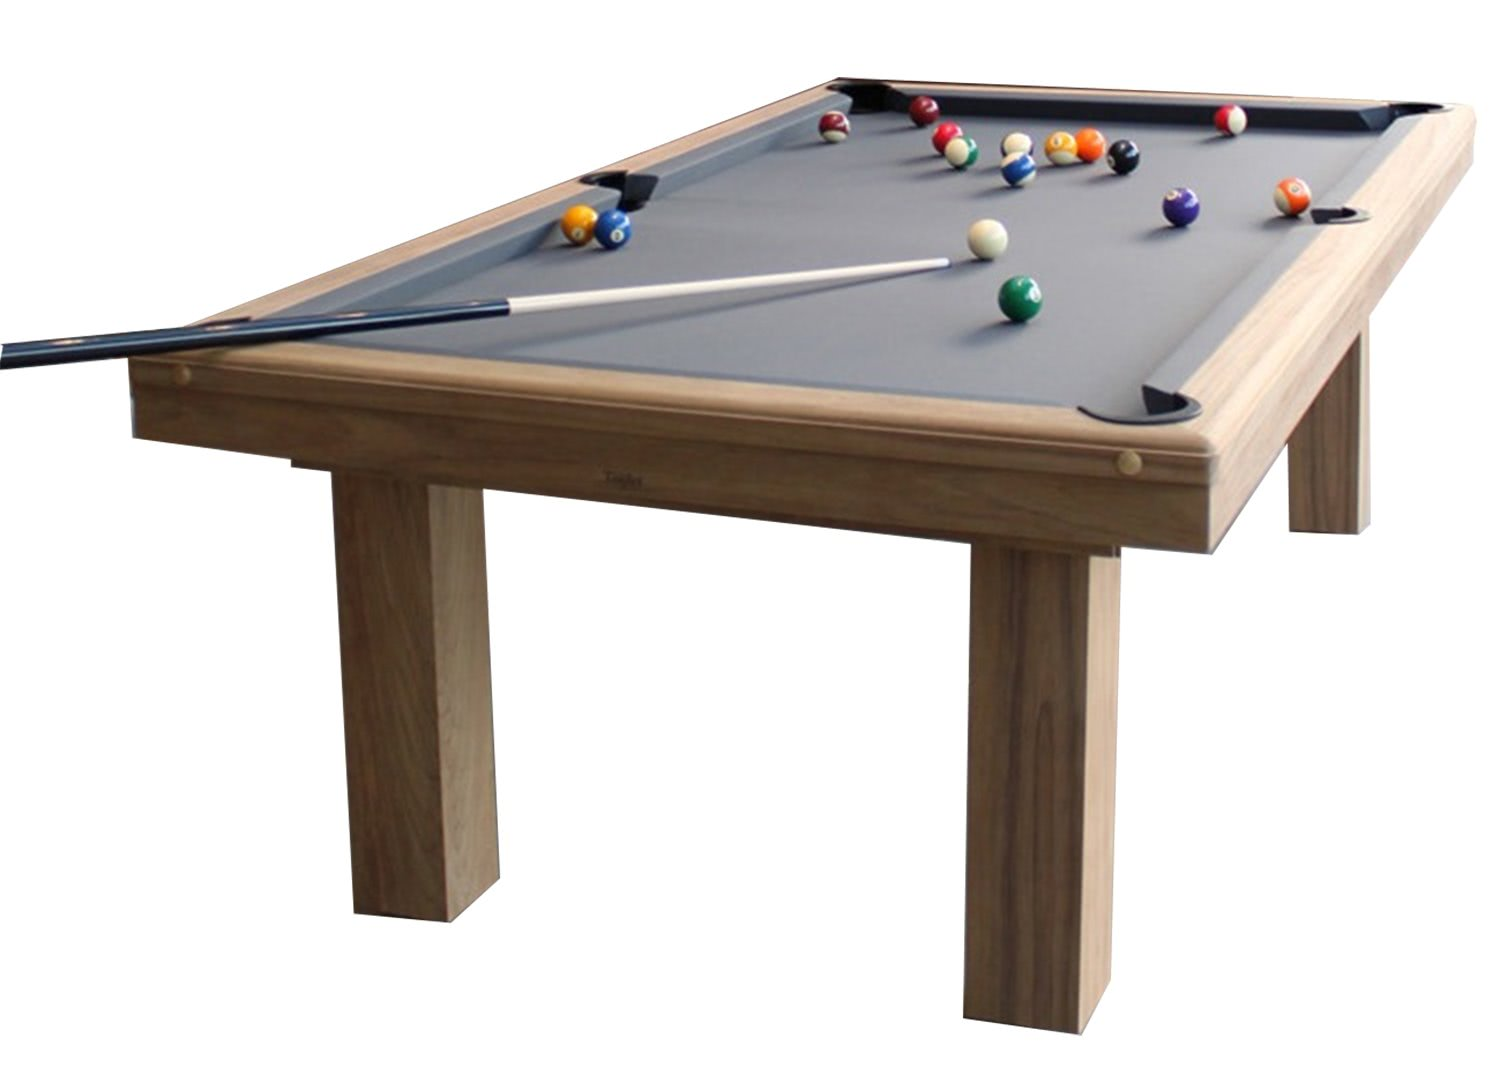 Billard Toulet Outdoor Teck Pool Table 6 ft 7 ft 8 ft : 4152billard toulet outdoor teck from www.libertygames.co.uk size 1500 x 1083 jpeg 71kB